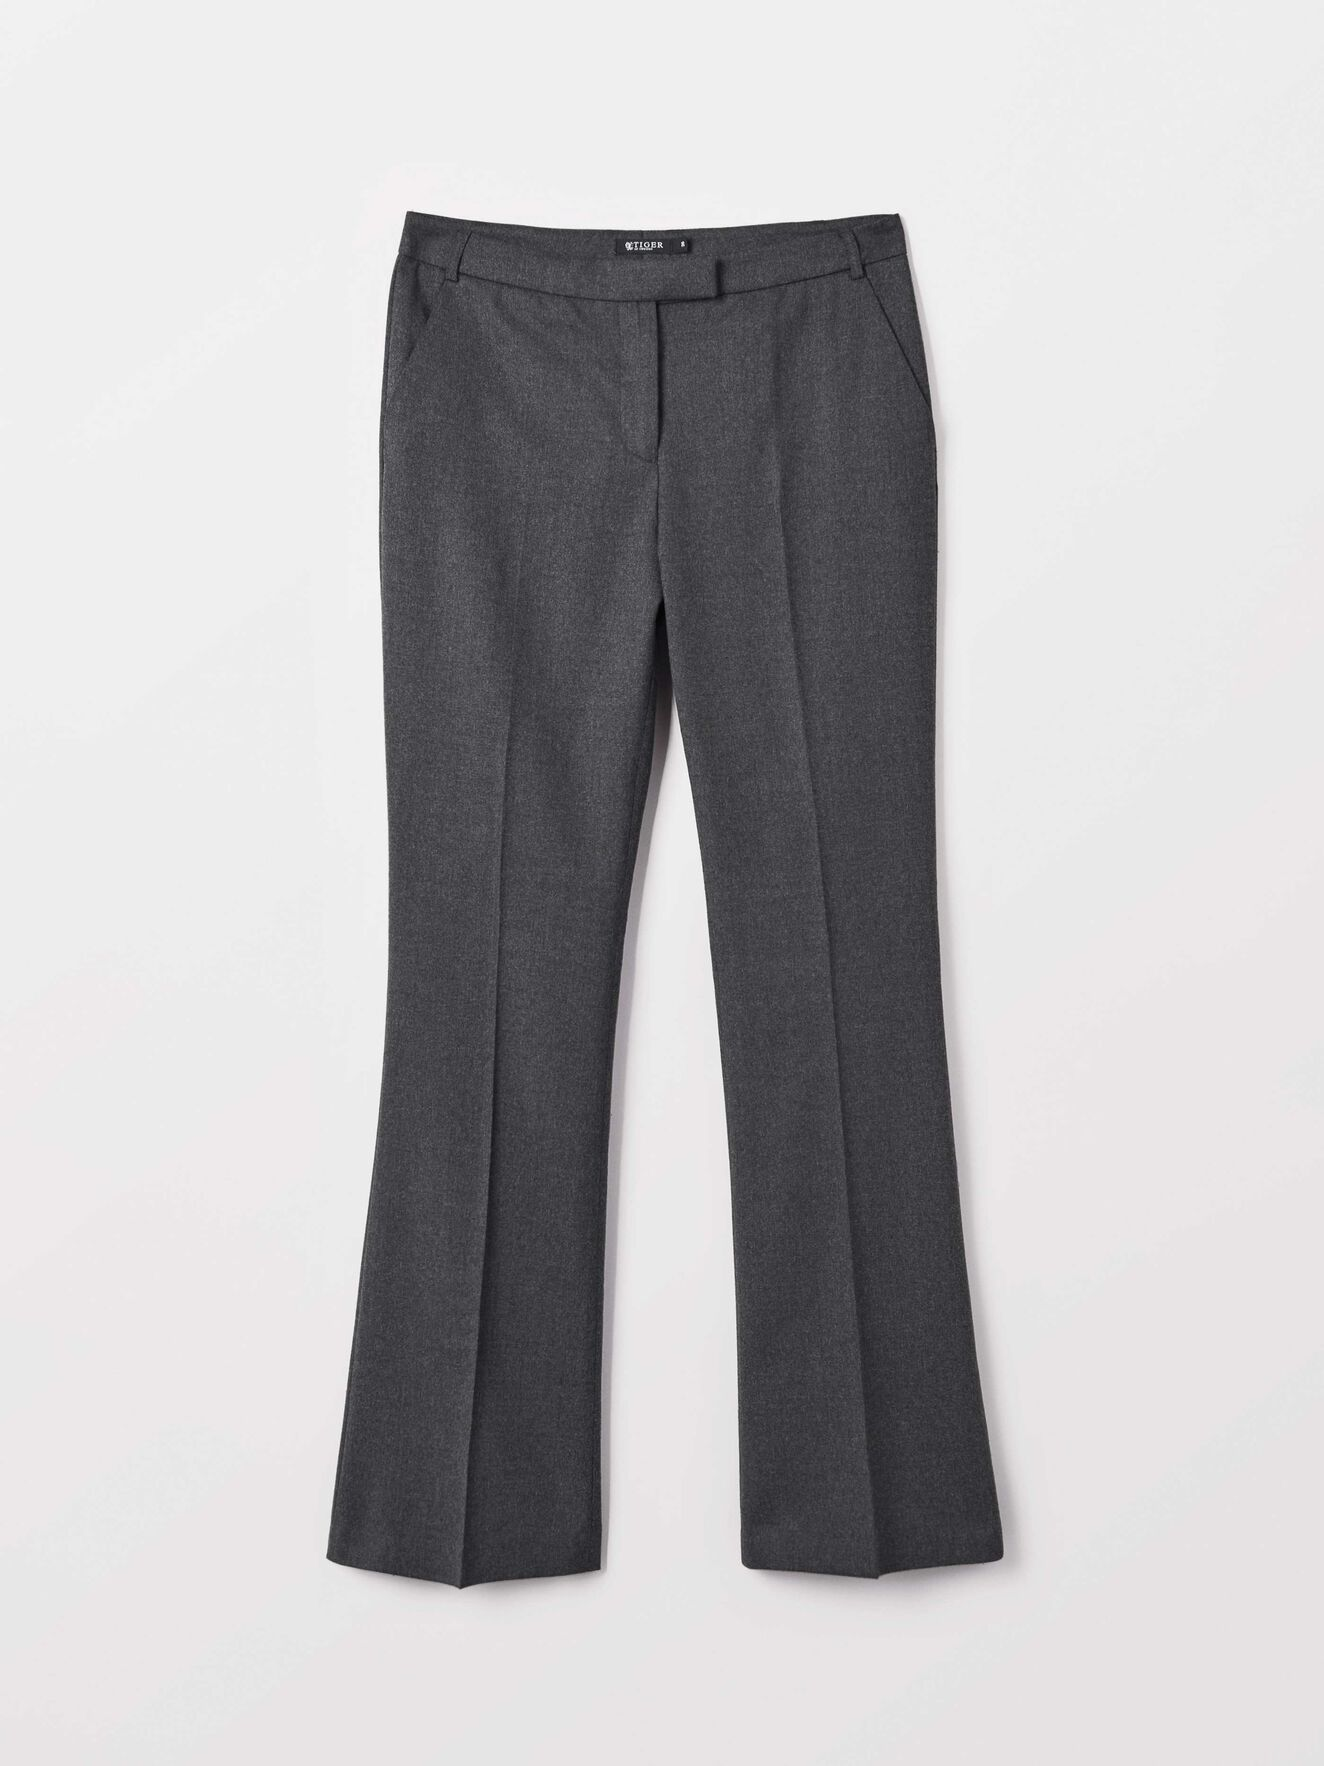 Nive 2 Trousers in Med Grey Mel from Tiger of Sweden